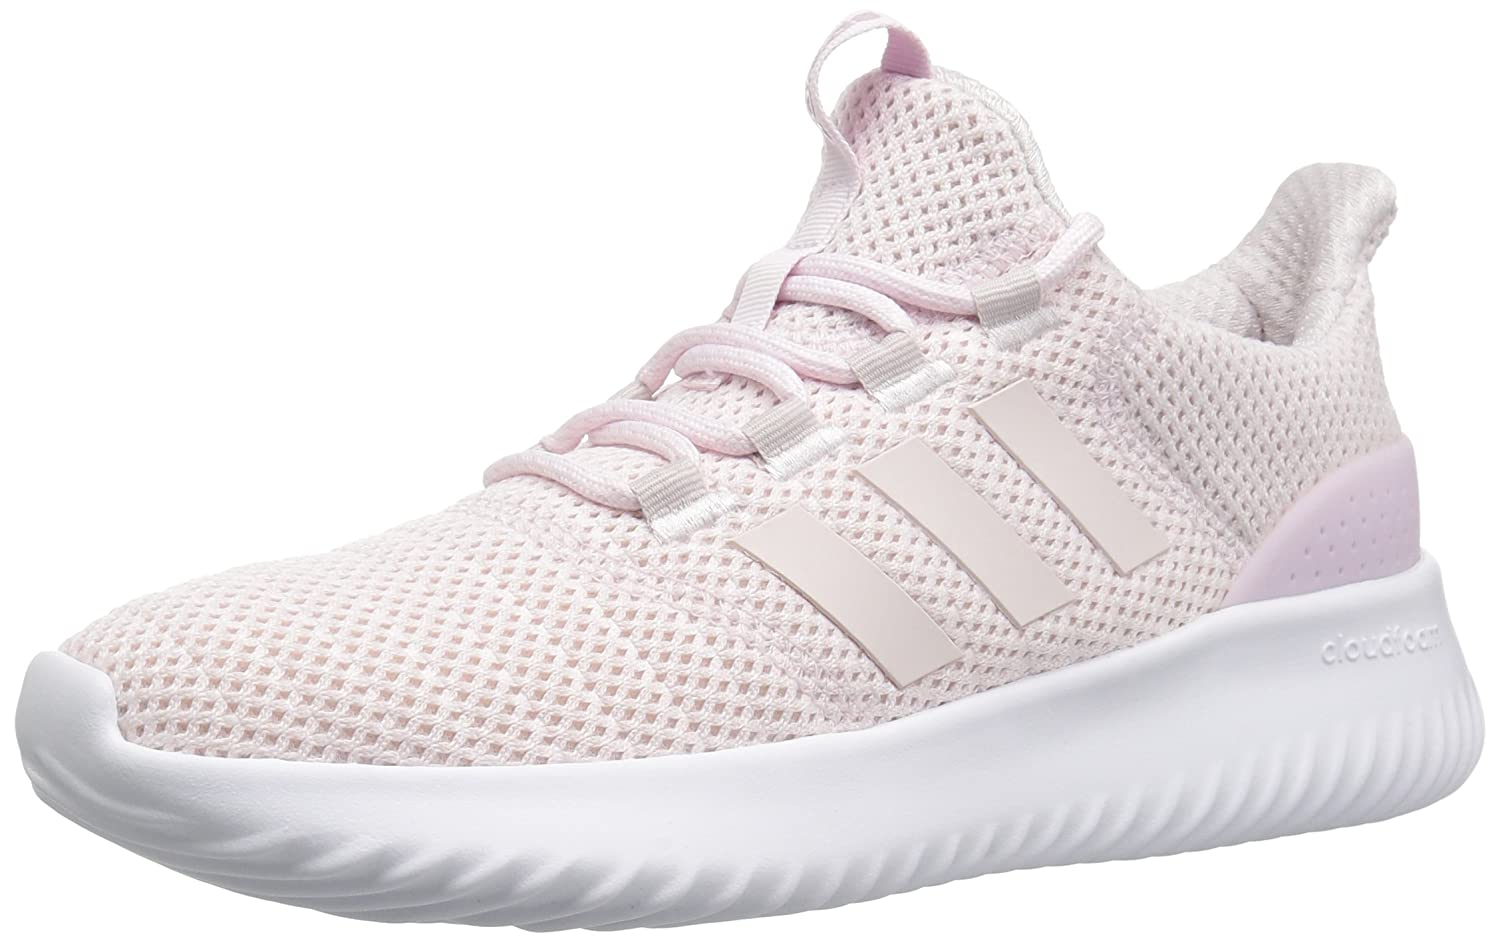 adidas Women's Cloudfoam Ultimate Running Shoe B0719HVSTP 7.5 B(M) US|Orchid Tint/Orchid Tint/Aero Pink